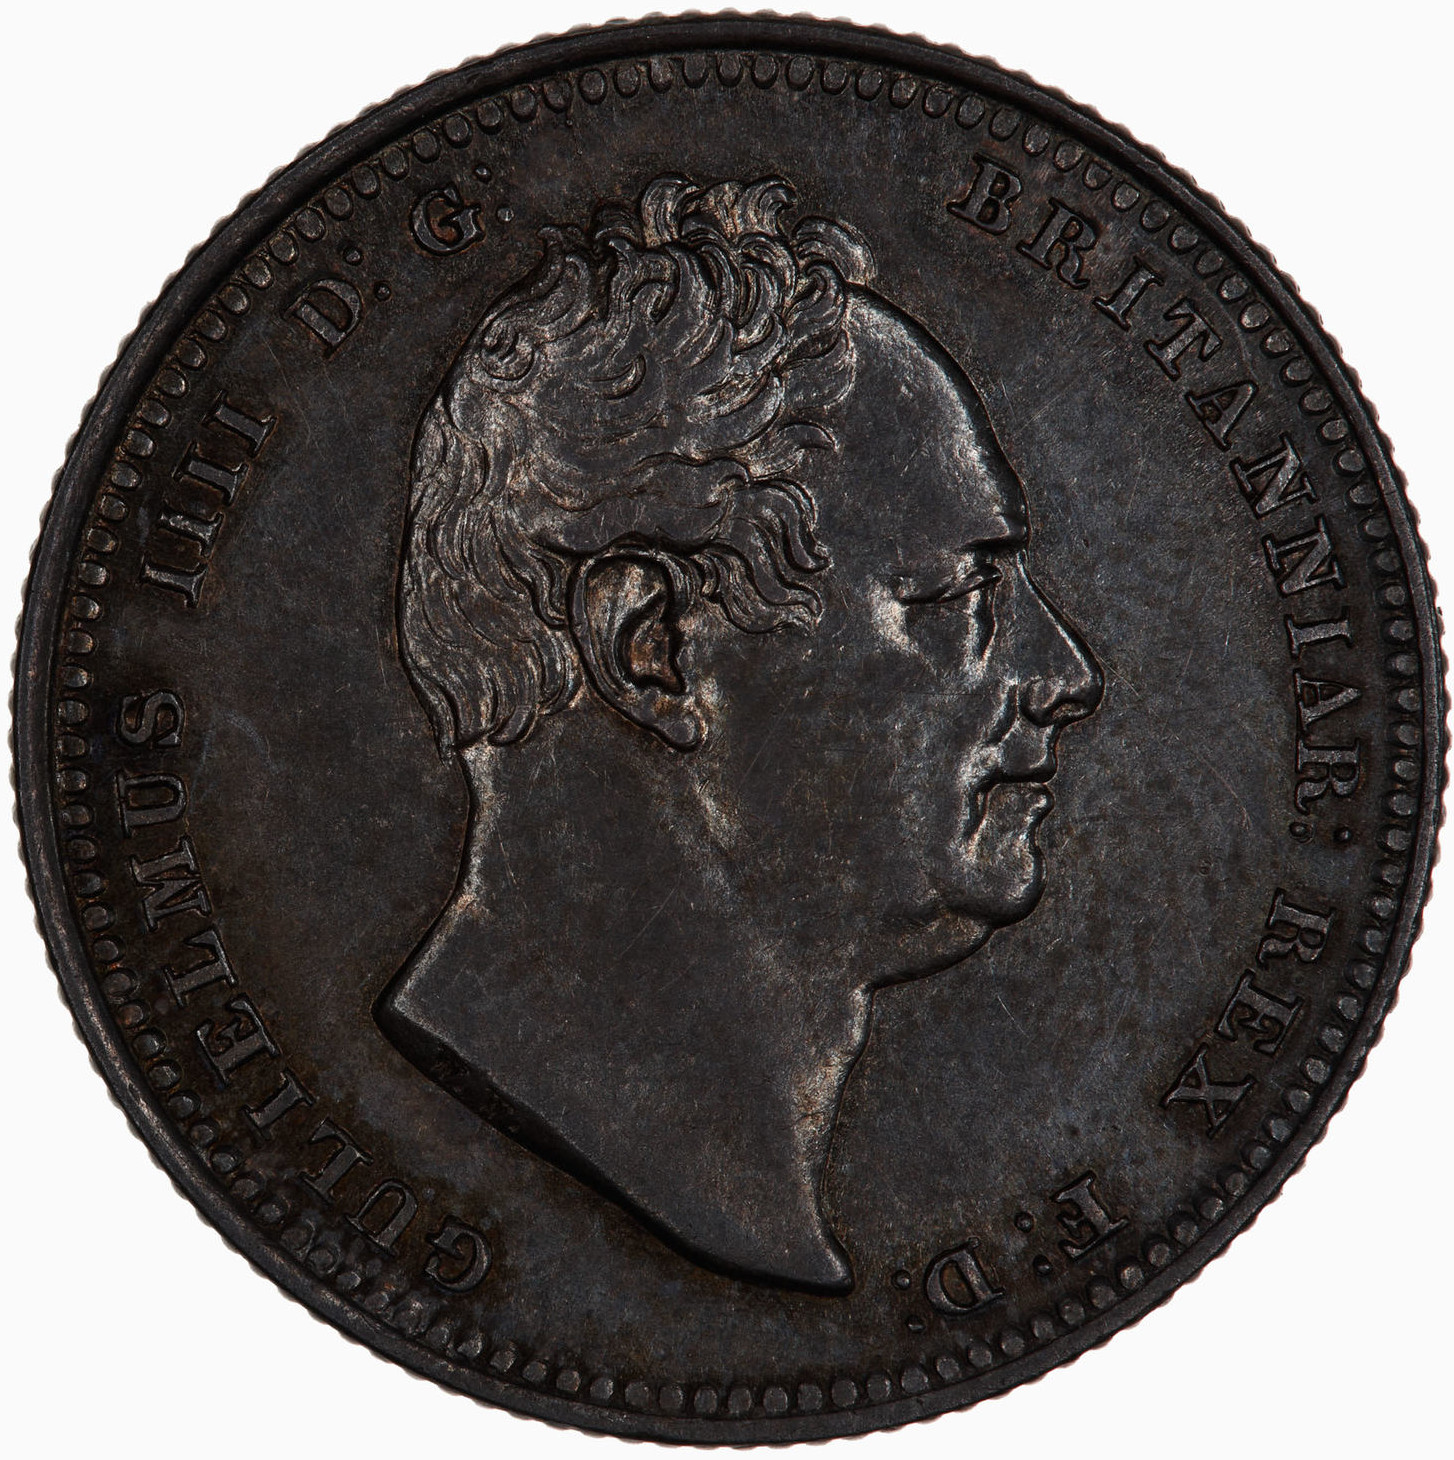 Shilling 1835: Photo Coin - Shilling, William IV, Great Britain, 1835